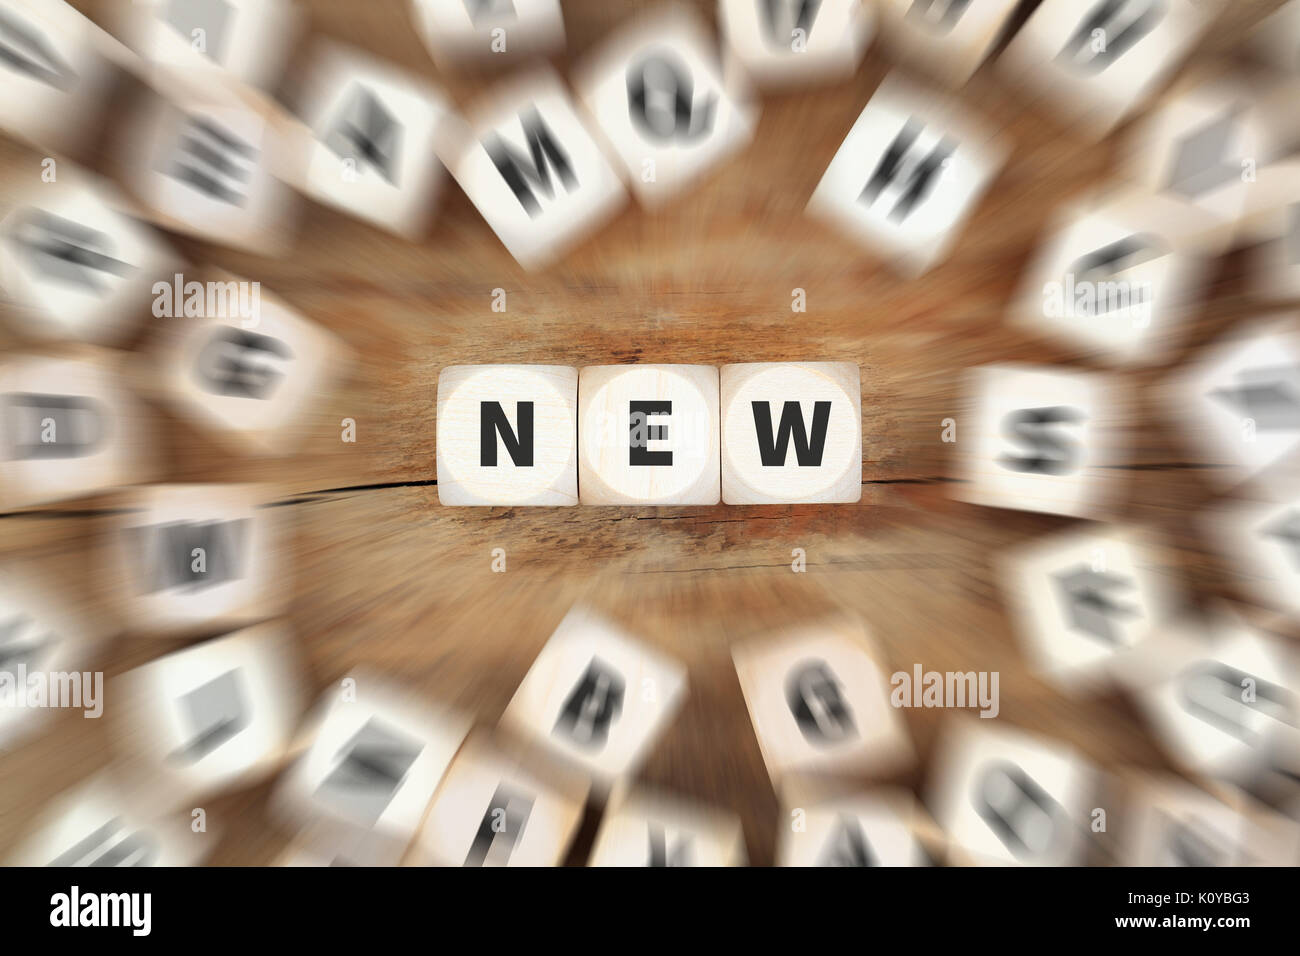 New promotion advertising dice business concept idea - Stock Image